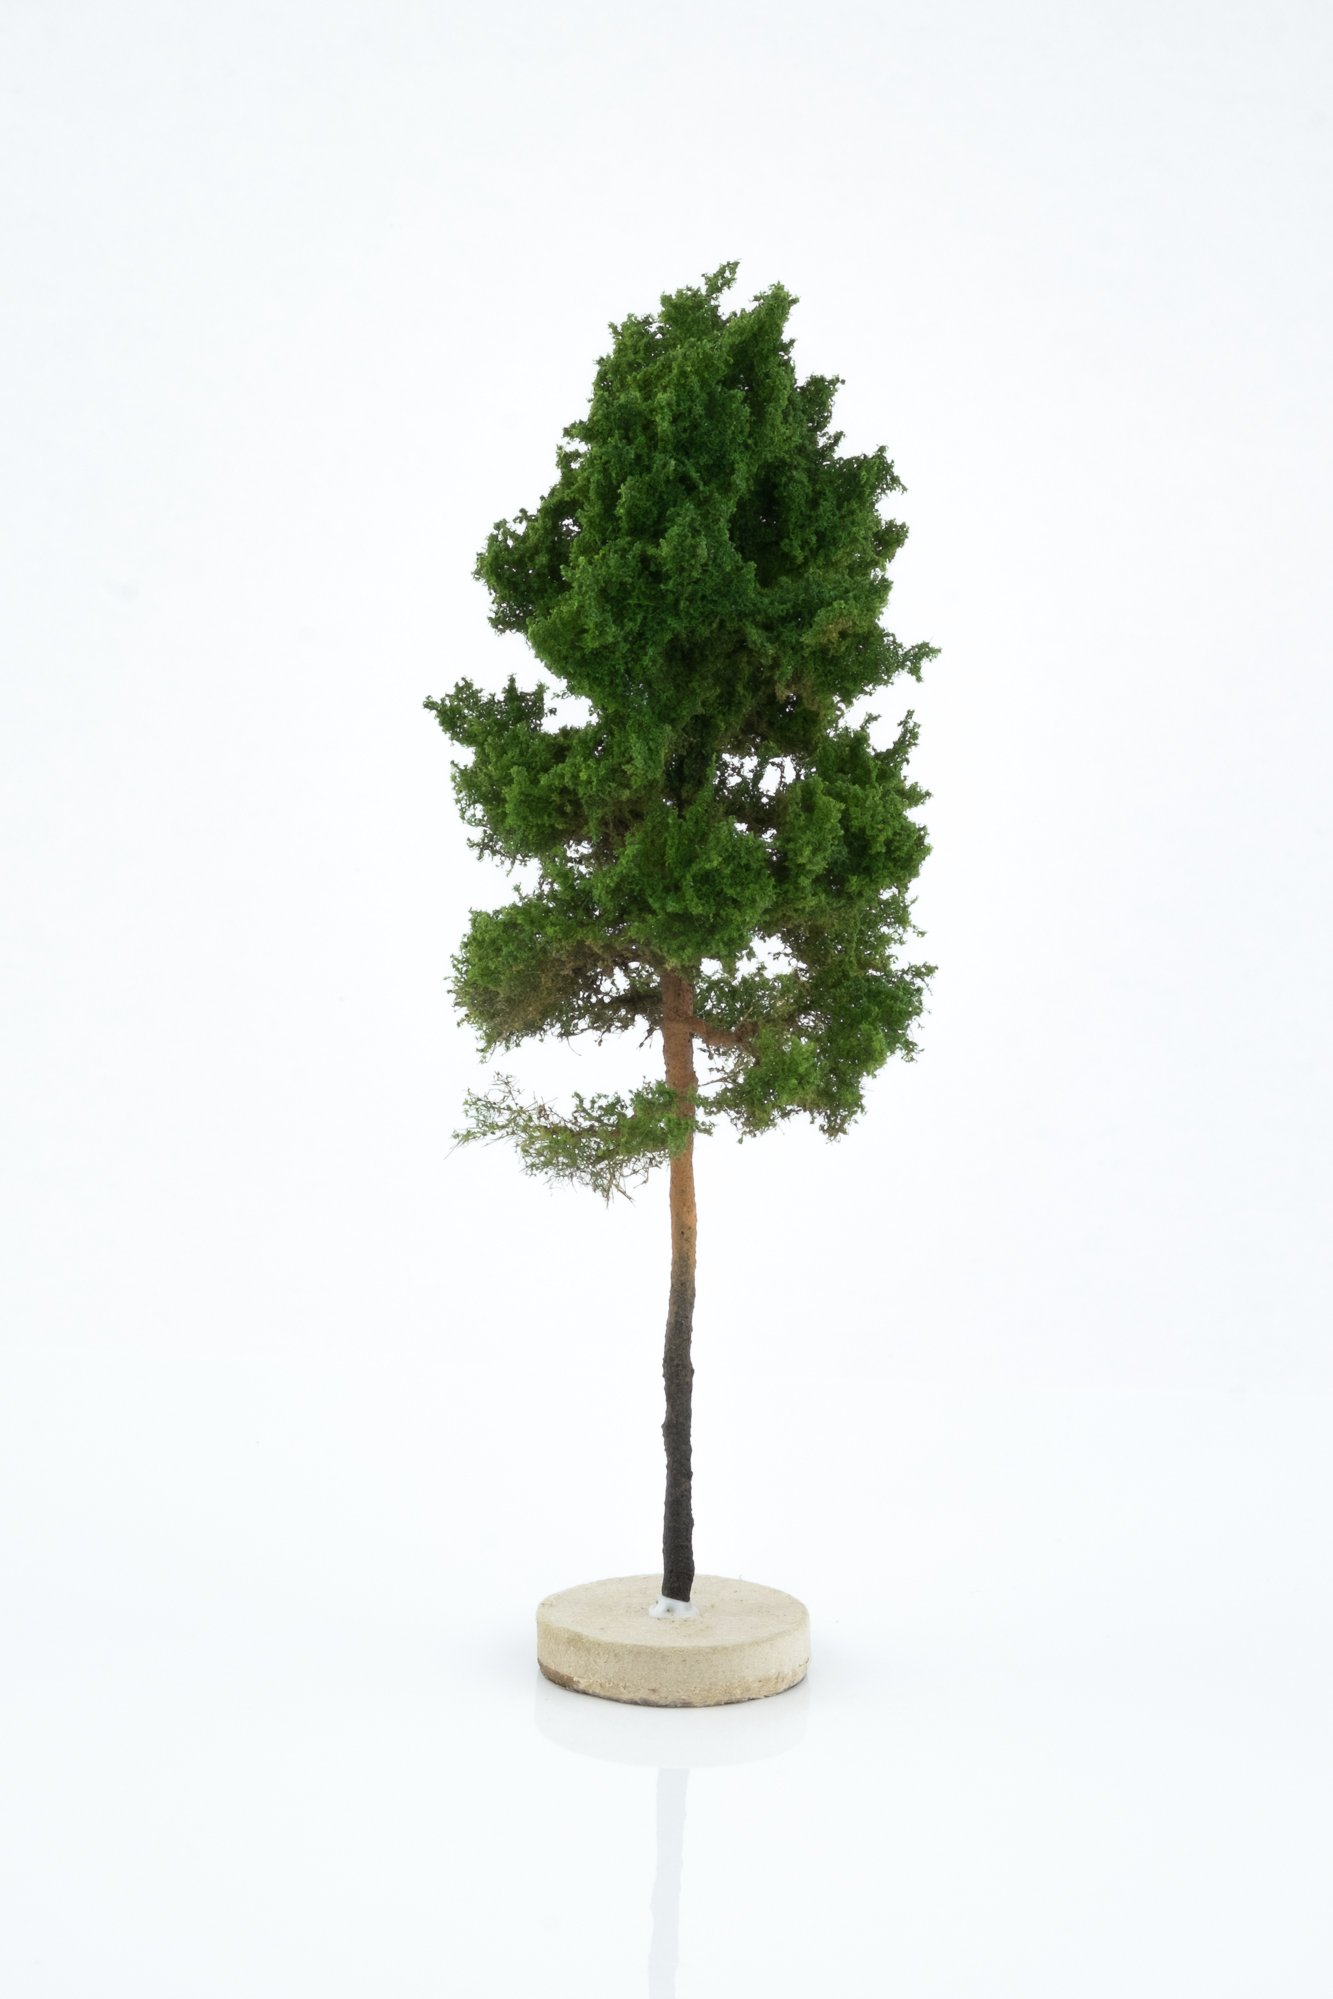 Hand-made, green, pine tree model. Size between 14 and 16 cm. Made from high quality model supplies by Primo Models.